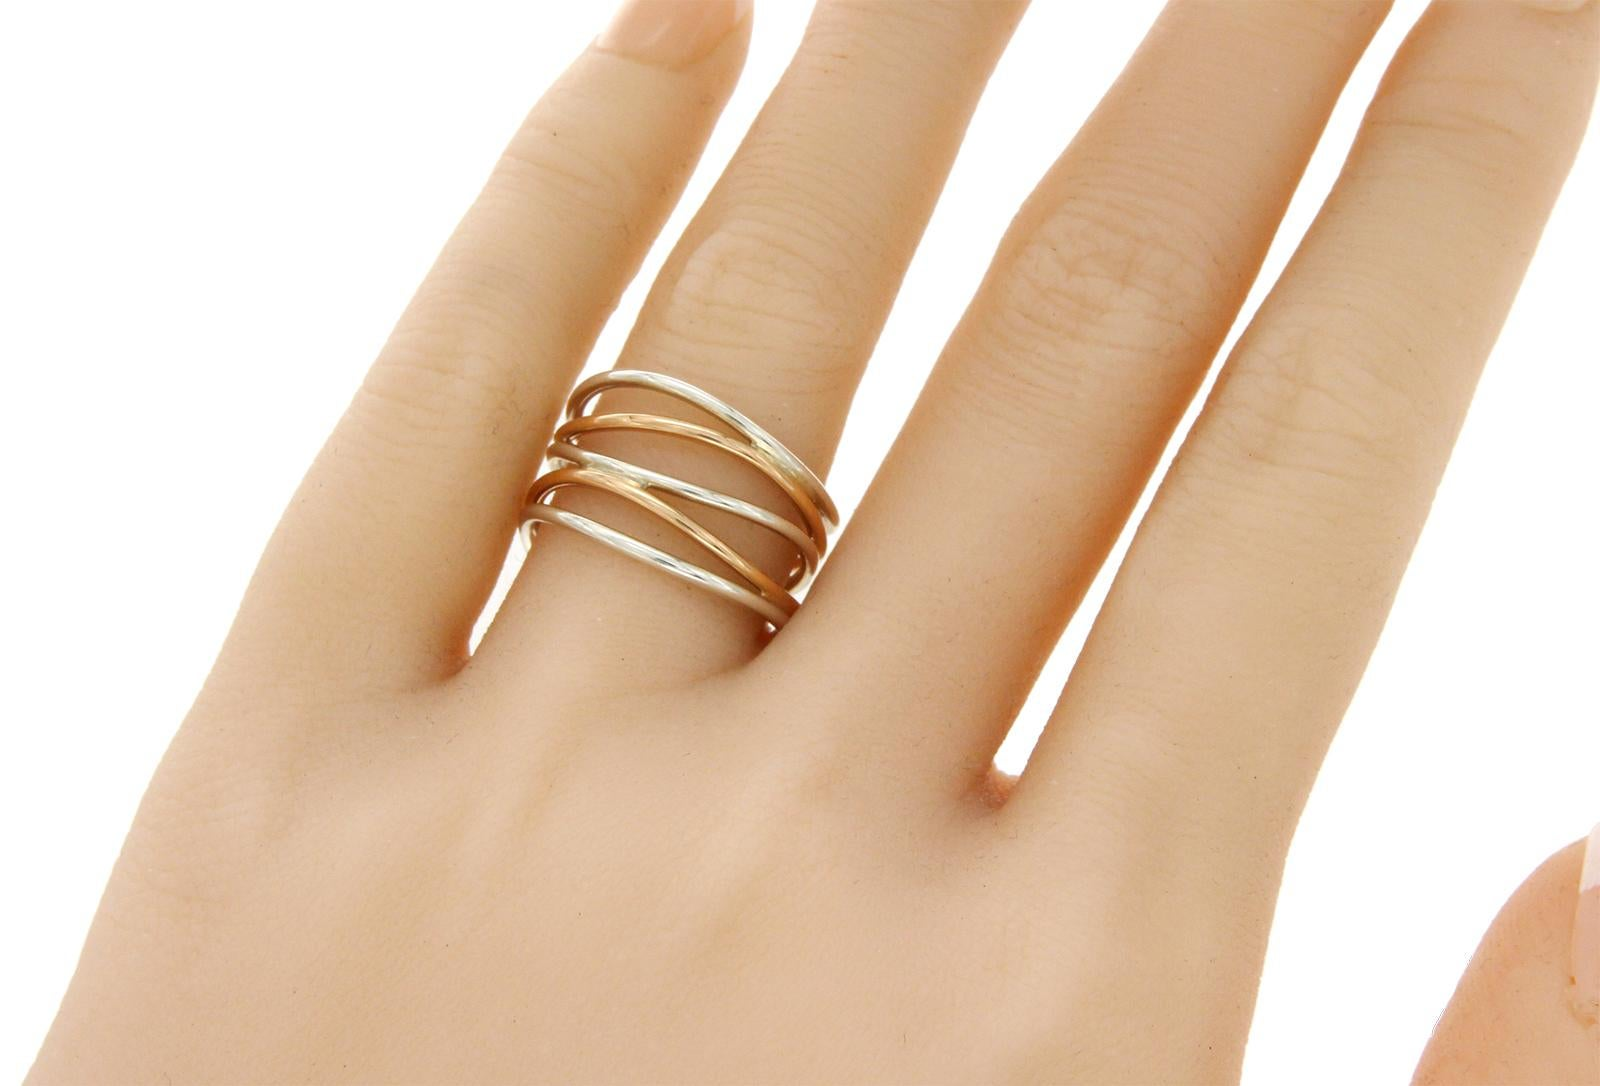 355478a3d Tiffany and Co. Elsa Peretti Silver and 18 Karat Rose Gold Wave Five Raw  Ring at 1stdibs